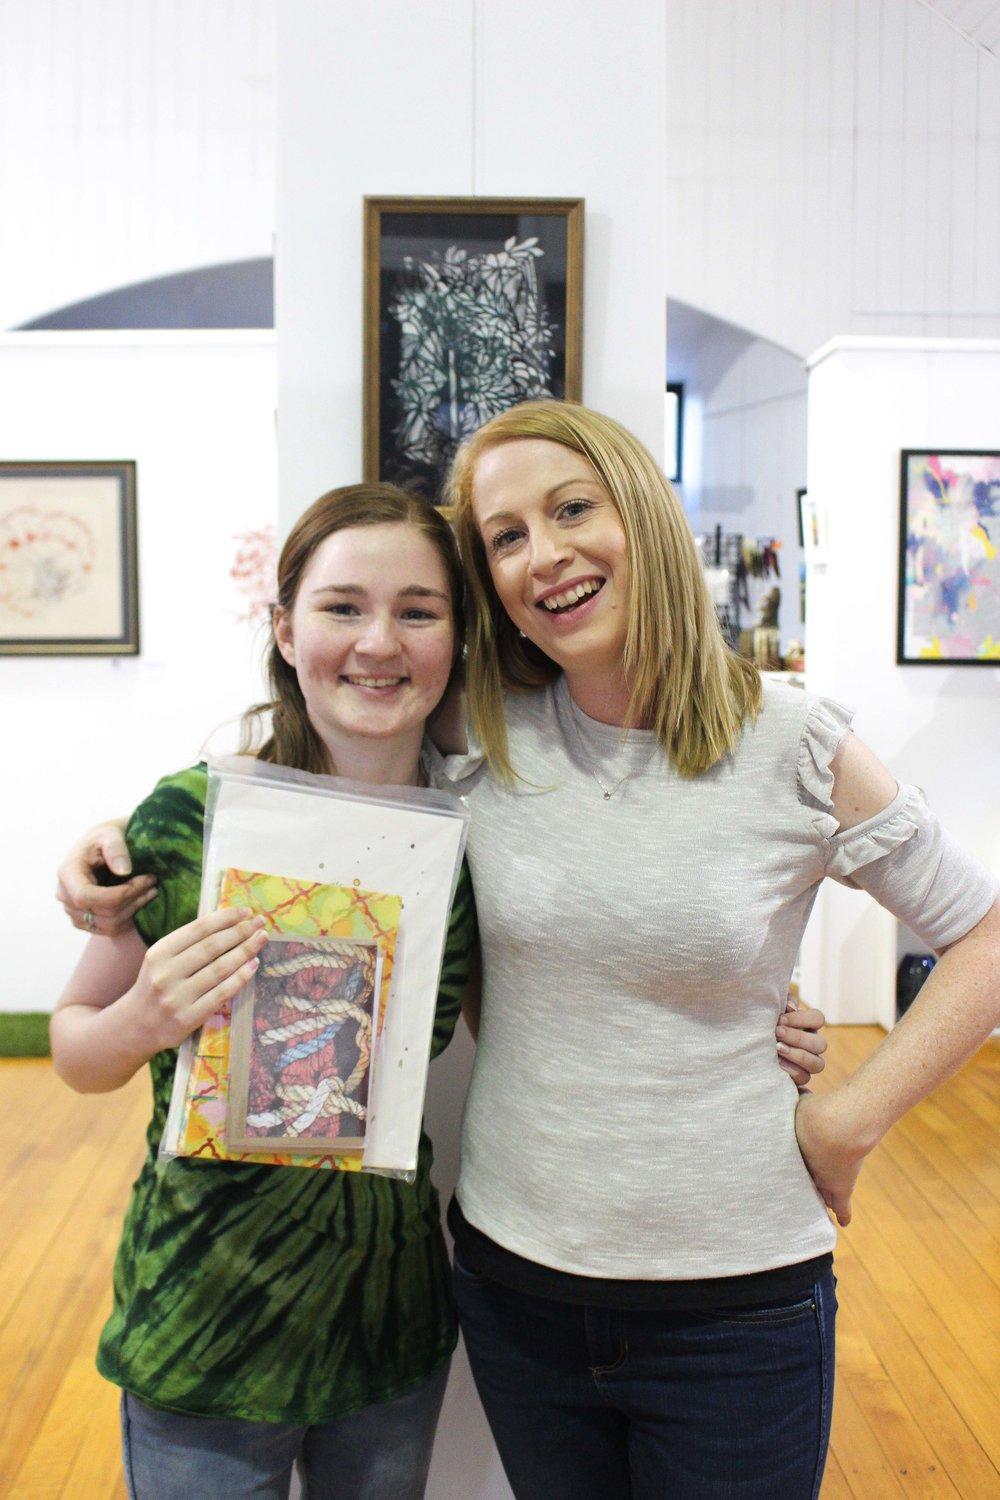 Eden Horner (Lucky Door Prize Winner) and Chantel Schott at Aspire Gallery. Photography by Rochelle Blakelock.